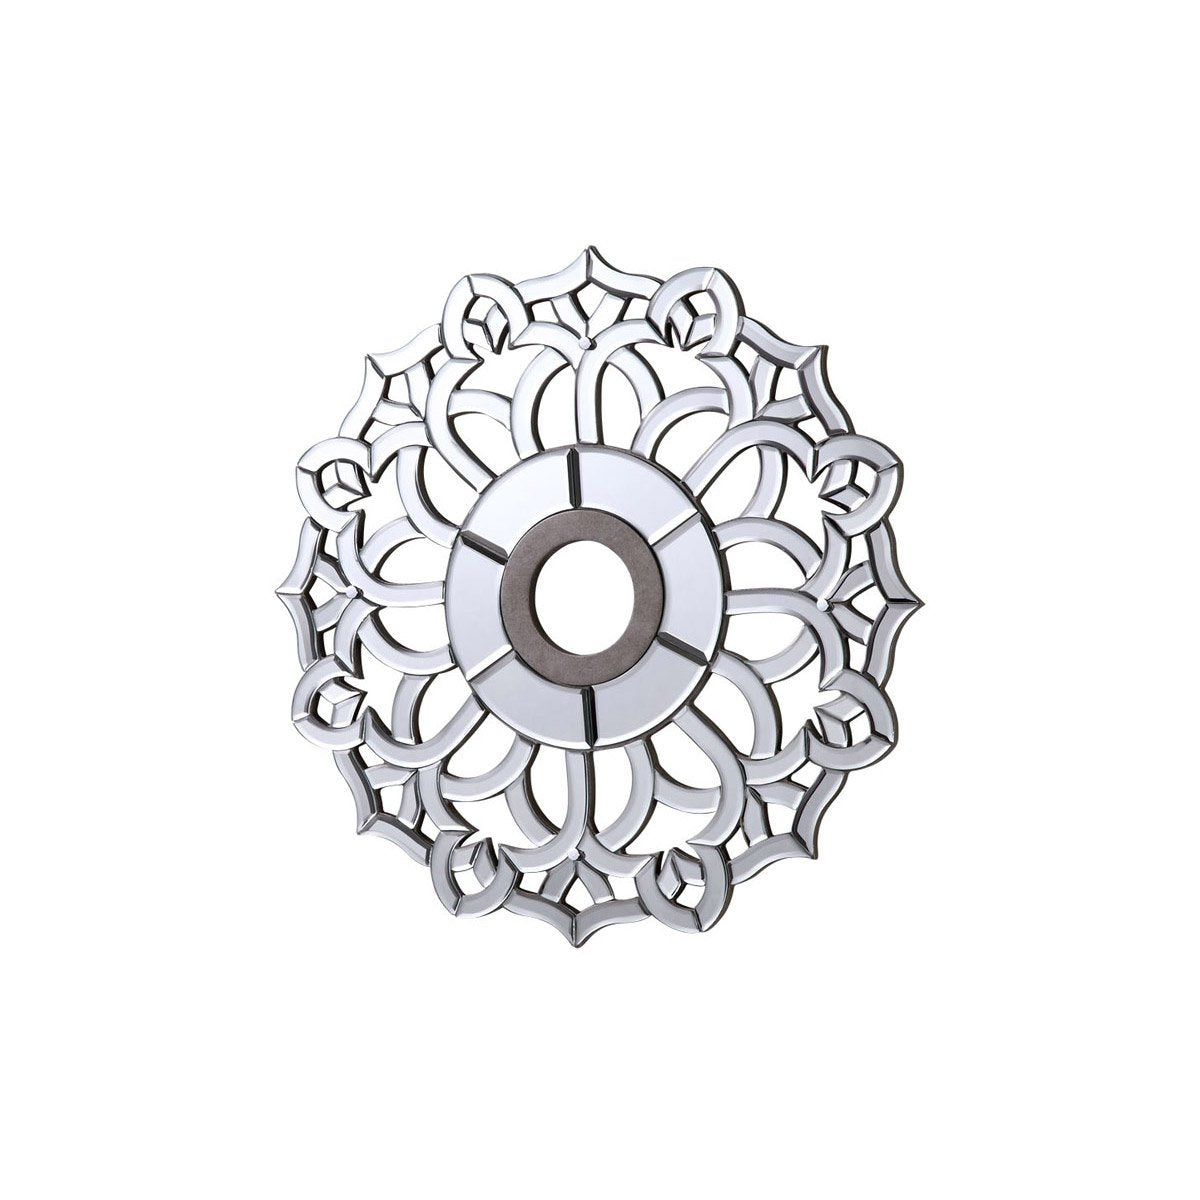 24 Mirrored Medallion - Silver Leaf Finish (Md406D24Sc) Medallion